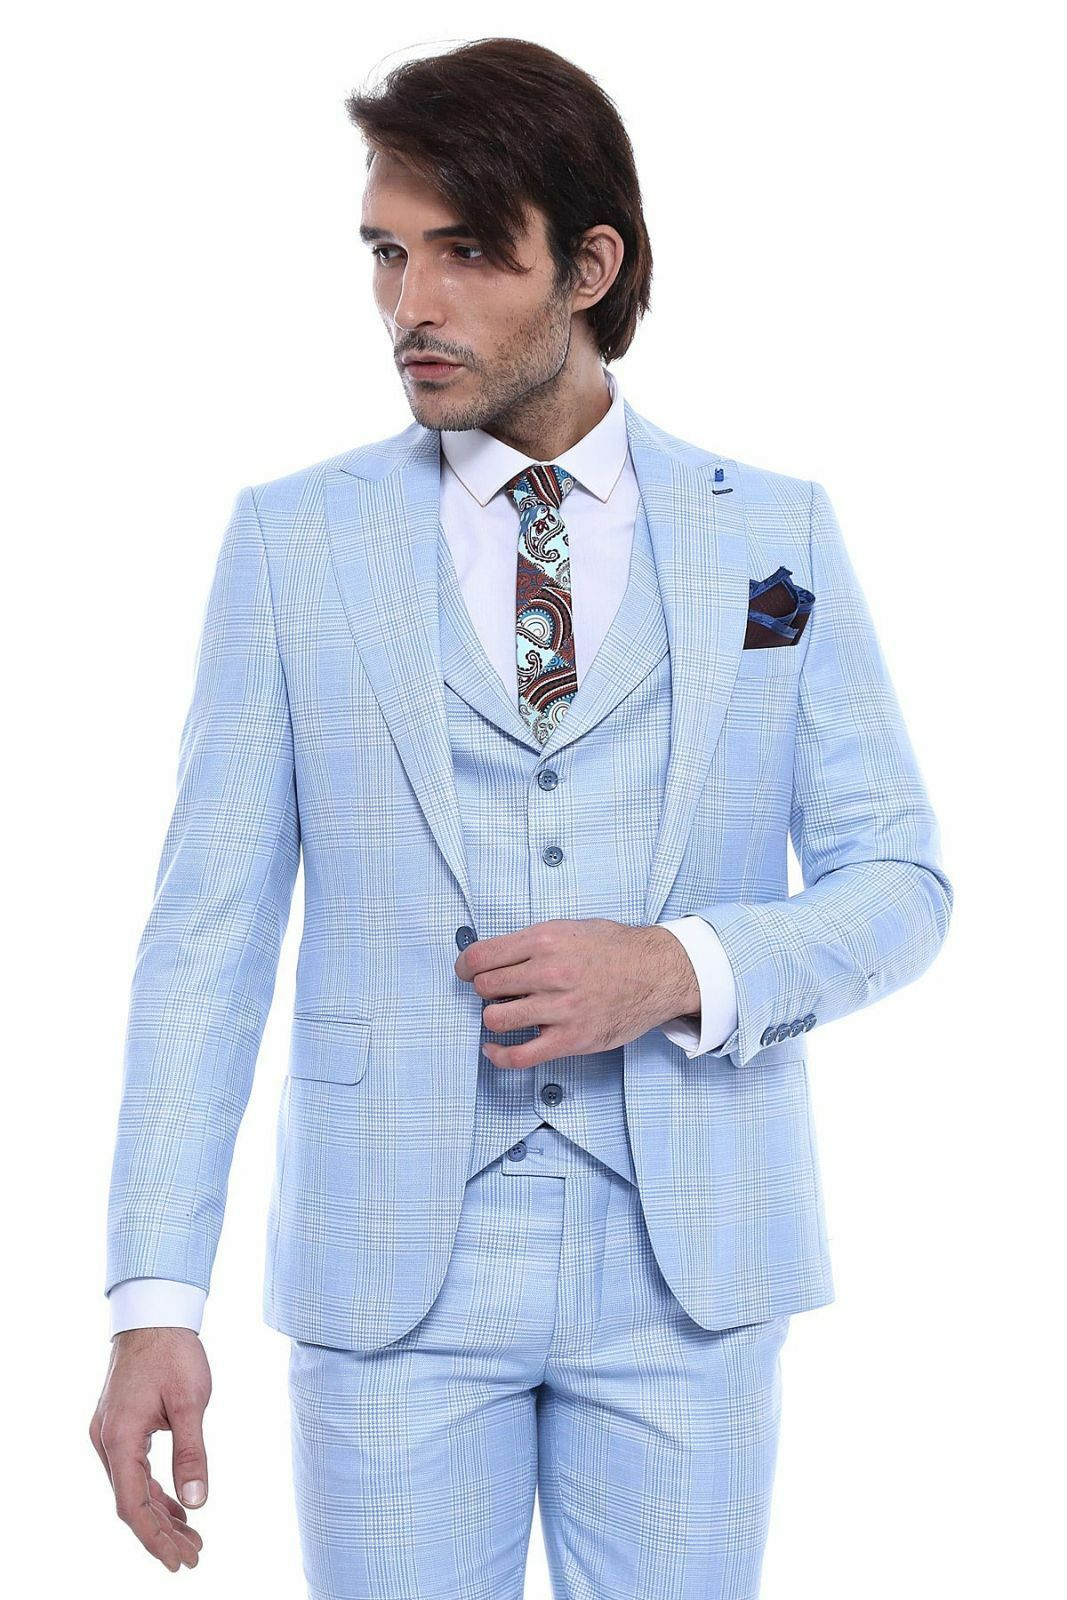 Primary image for Men 3pc Vested Suit Turkey WESSI , J.VALINTIN Slim Fit 132-22 English Plaid Blue